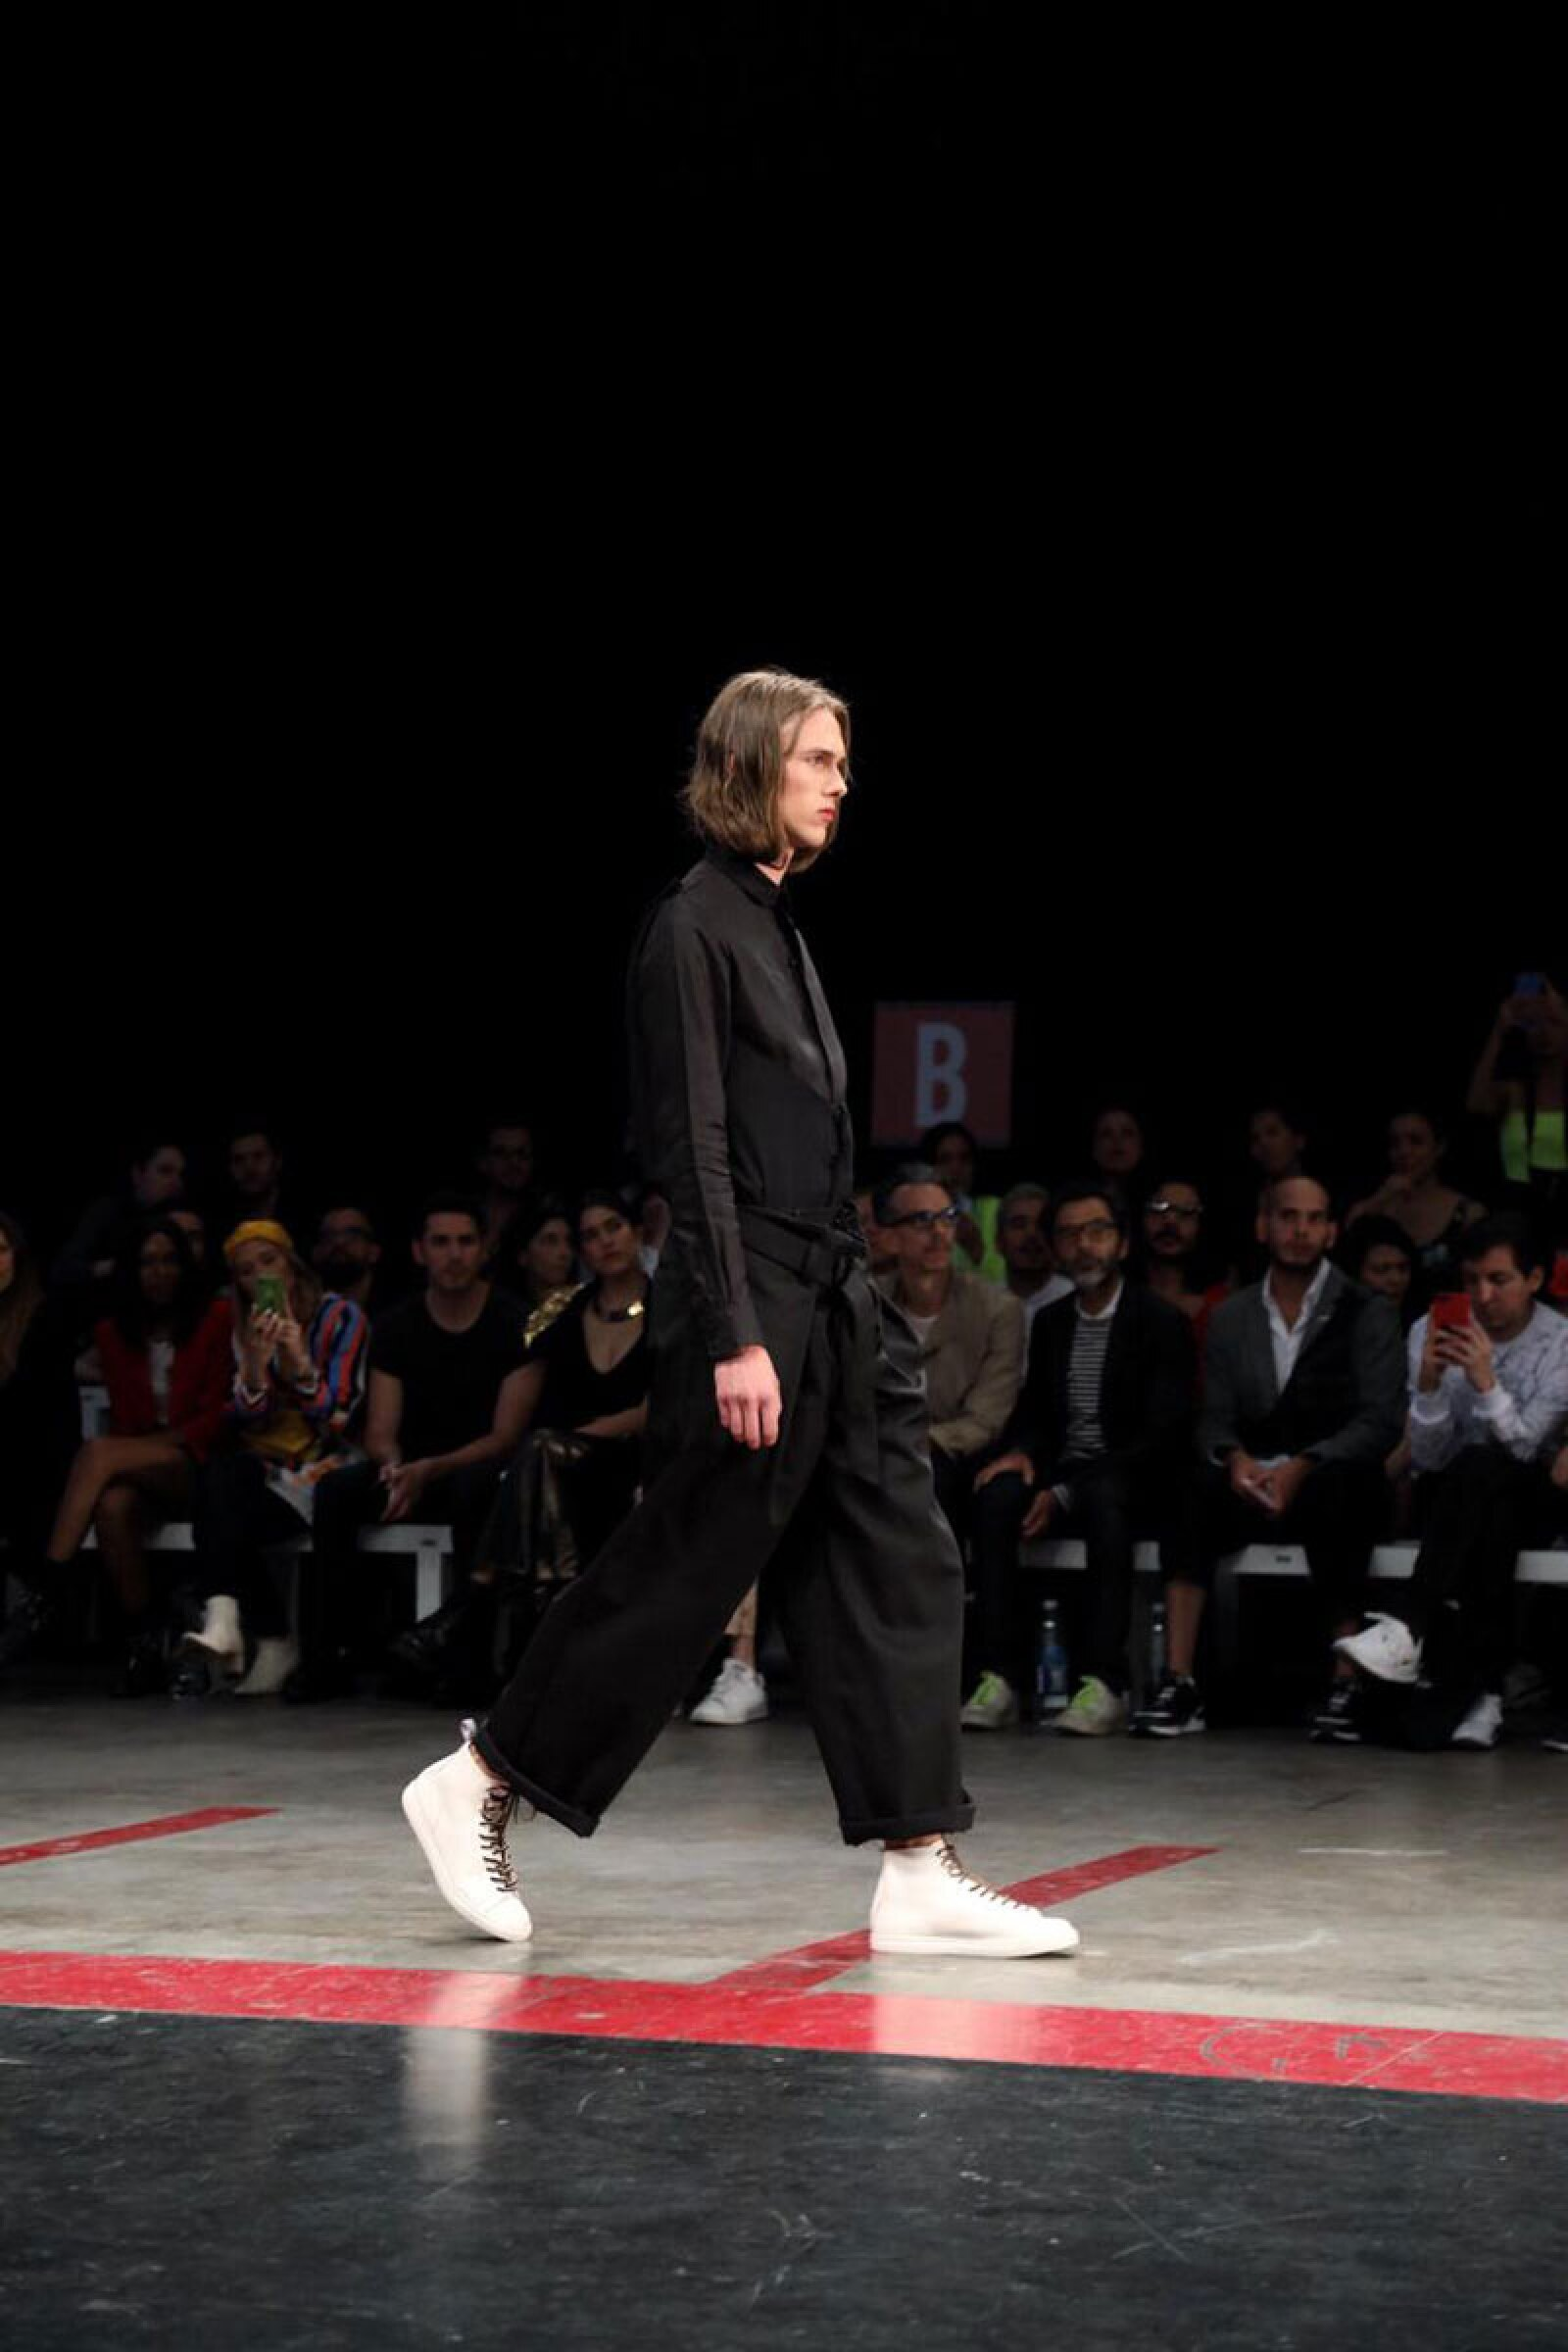 Boyfriends-Shirt-MBFWMx-Runway-White-Sneakers-And-Black-Jumpsuite